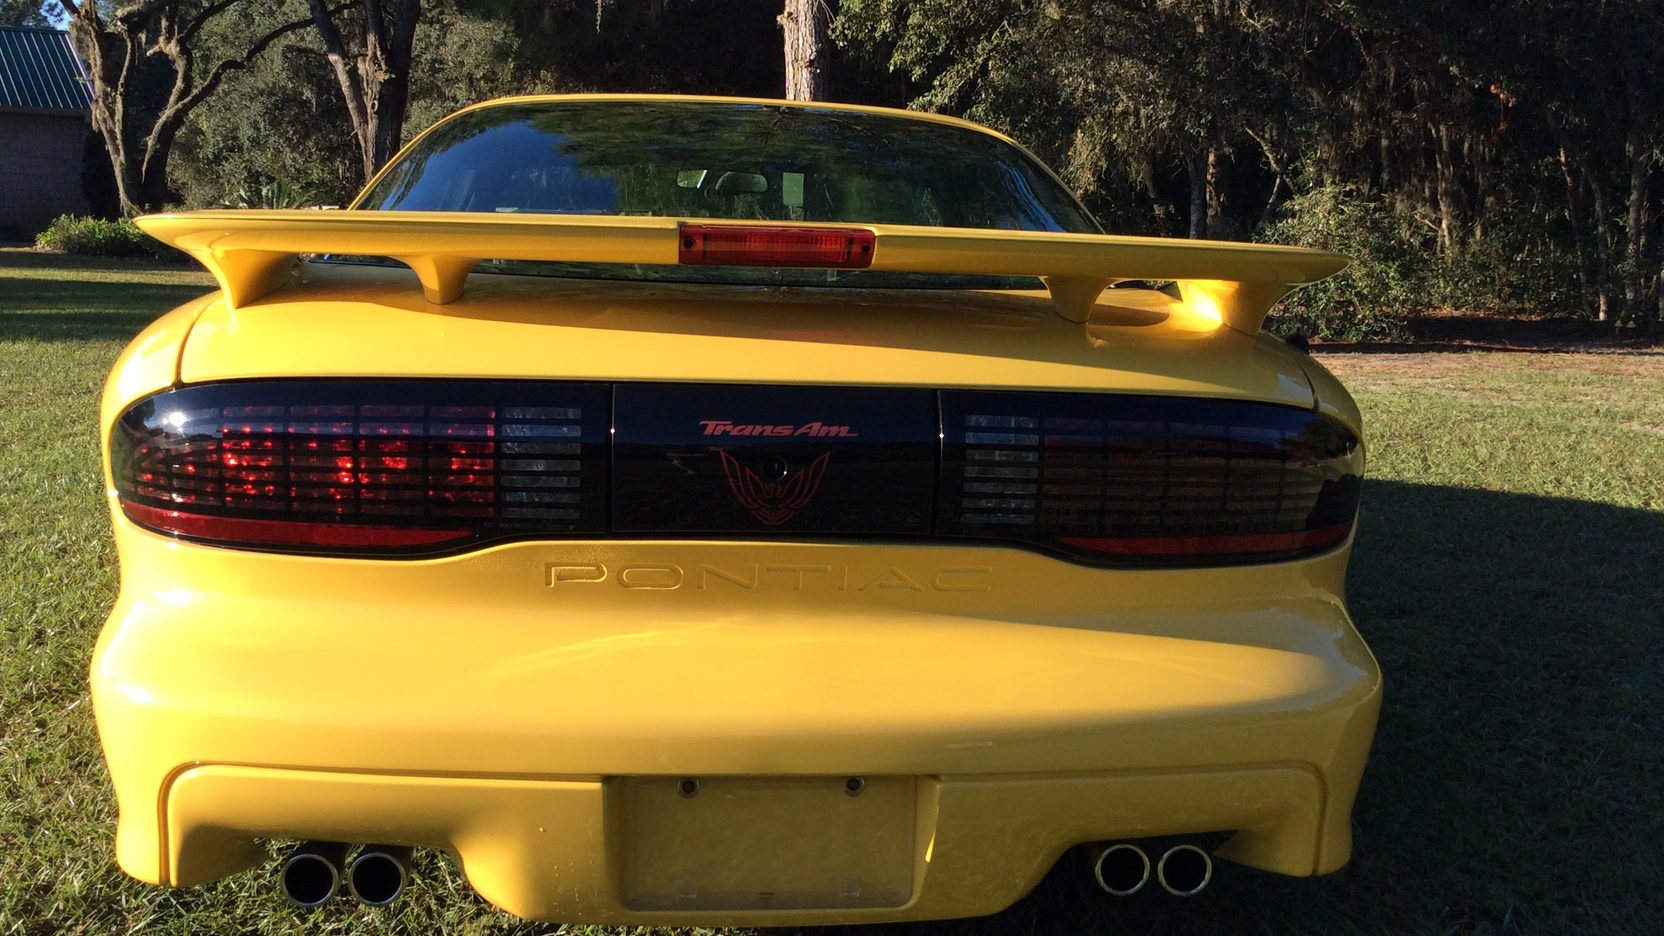 1993 Pontiac Firebird Trans Am rear